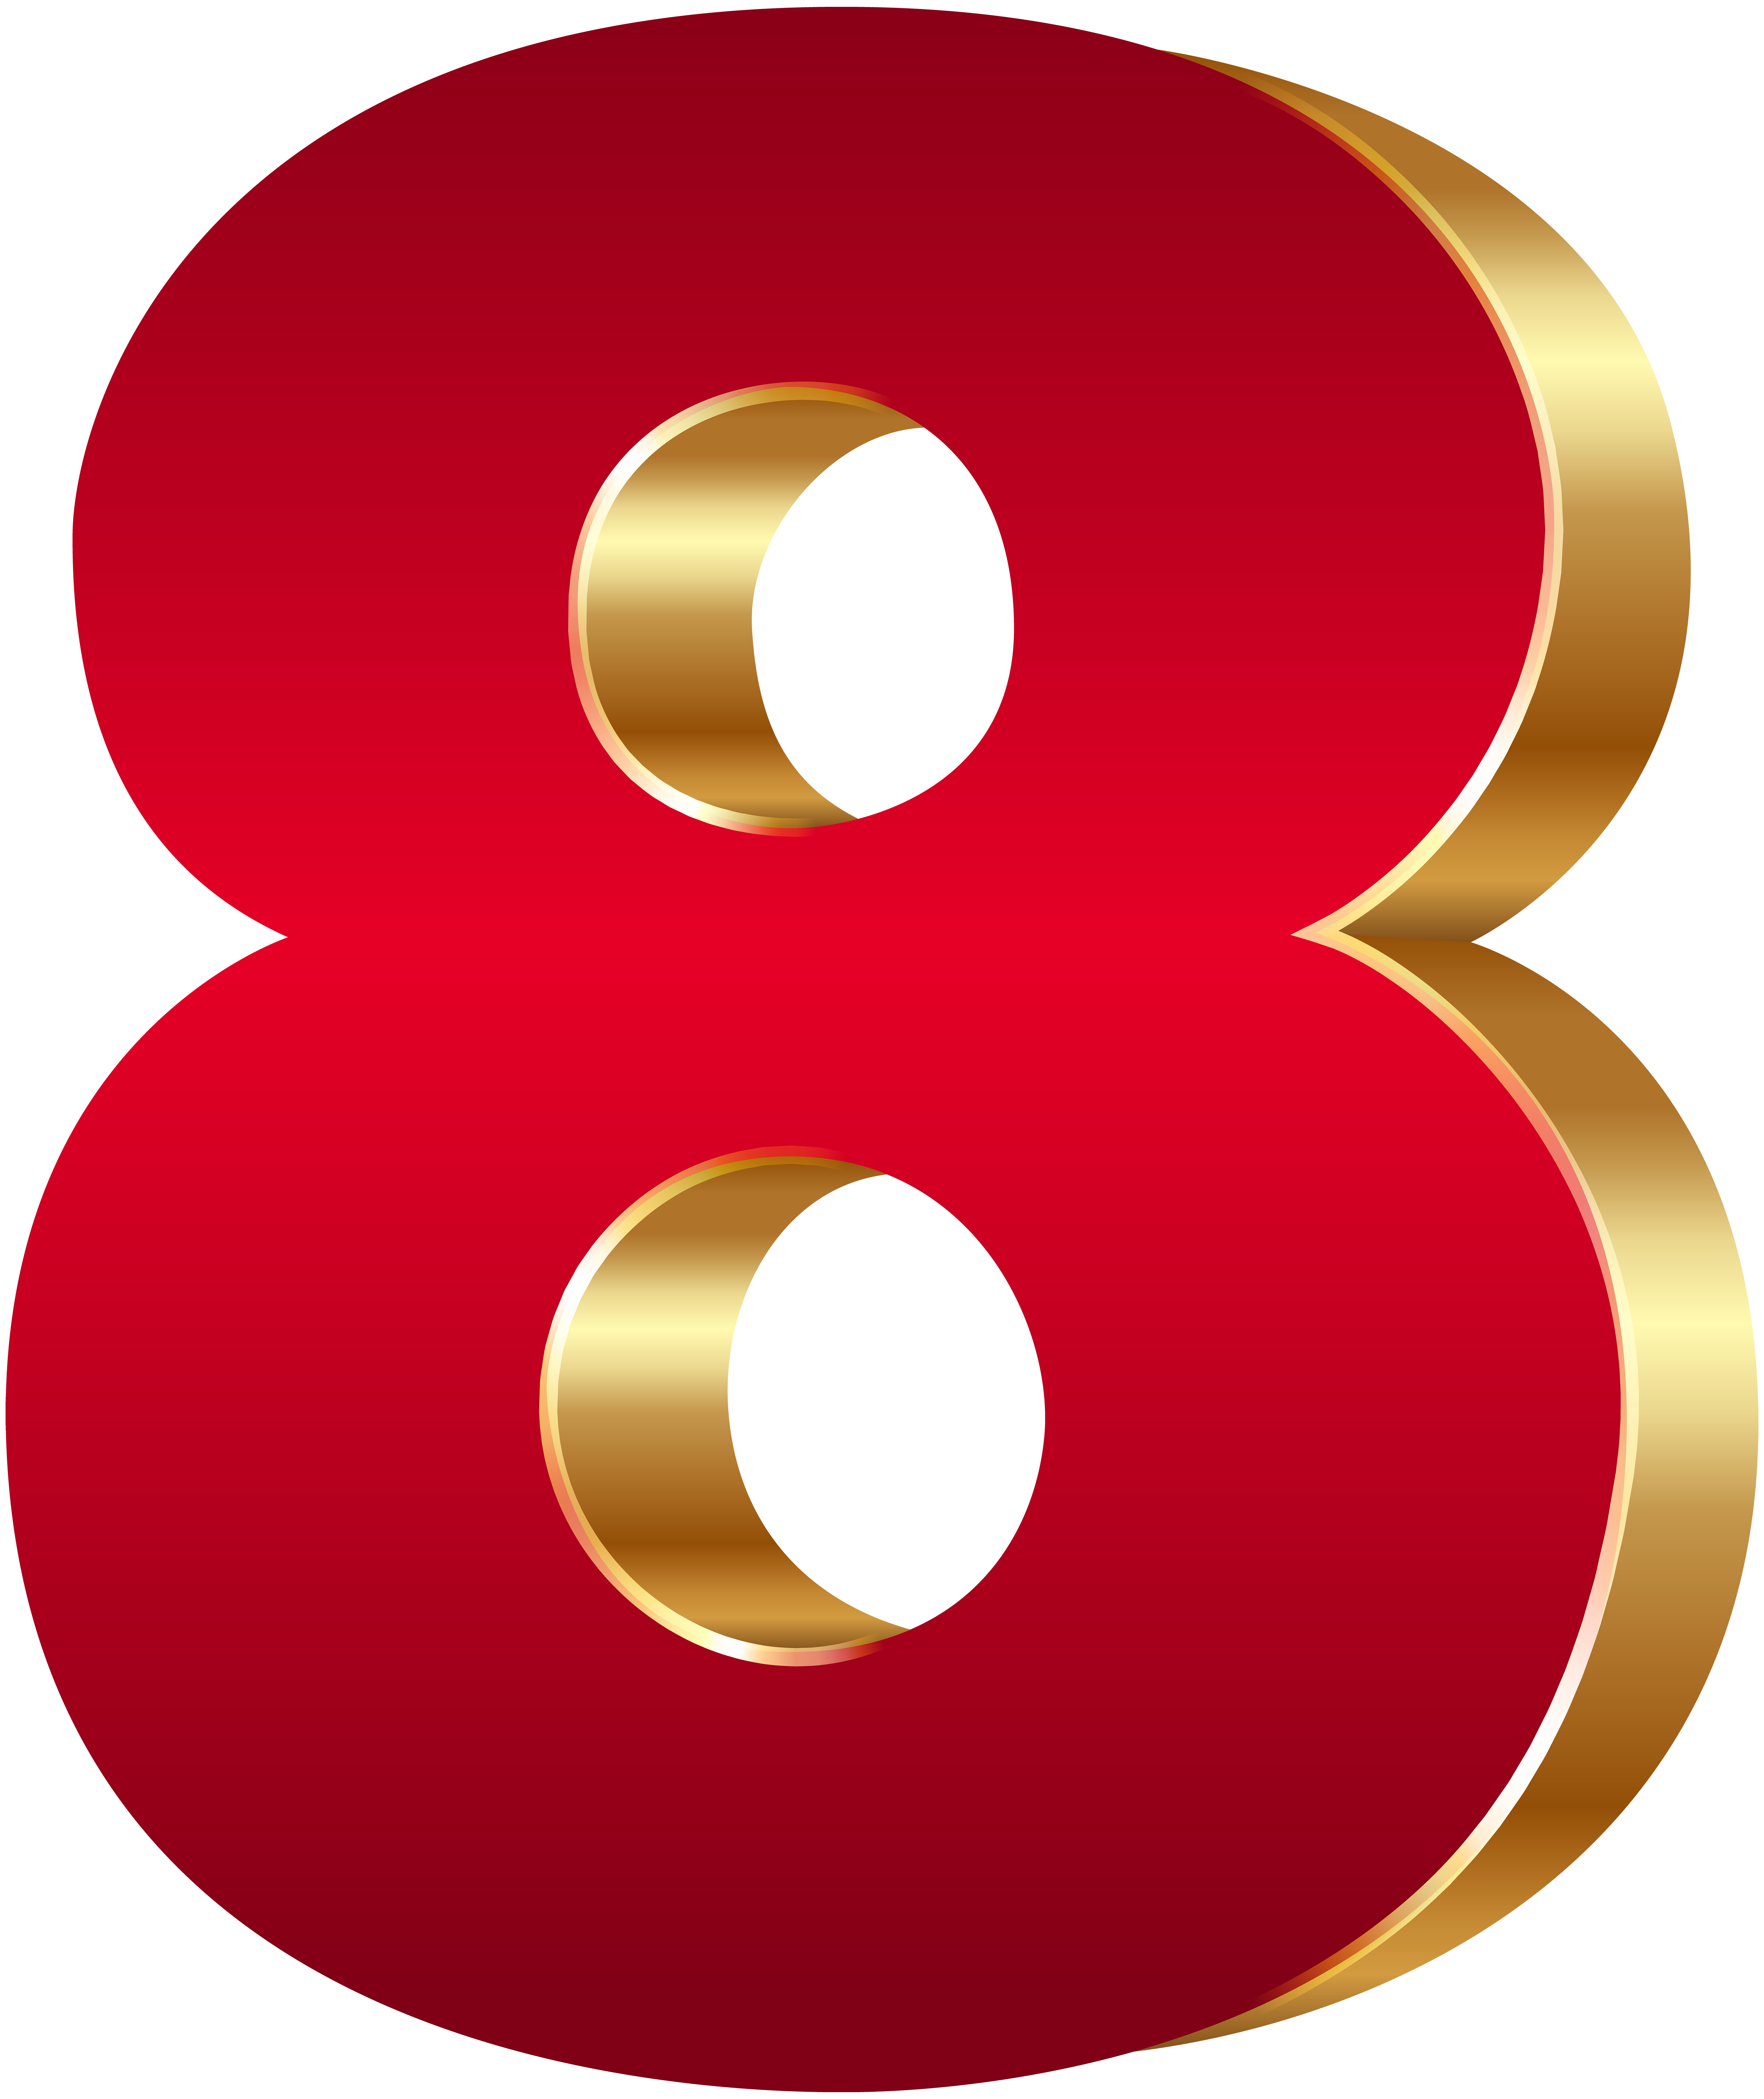 Christmas numbers clipart graphic freeuse stock 3D Number Eight Red Gold PNG Clip Art Image | Gallery Yopriceville ... graphic freeuse stock